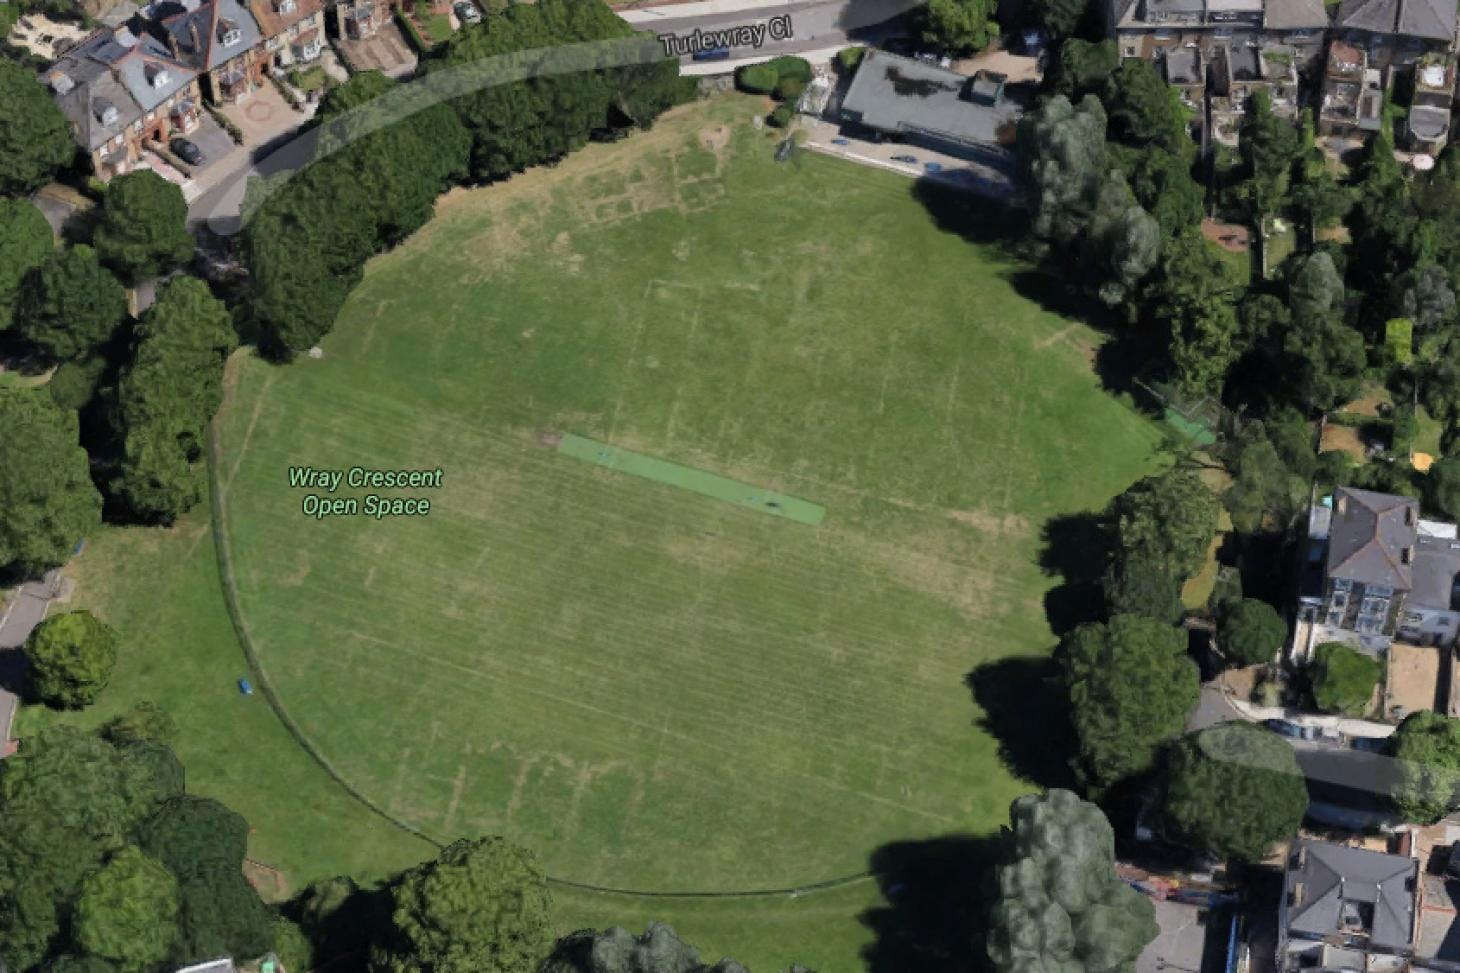 Wray Crescent Full size | Artificial cricket facilities